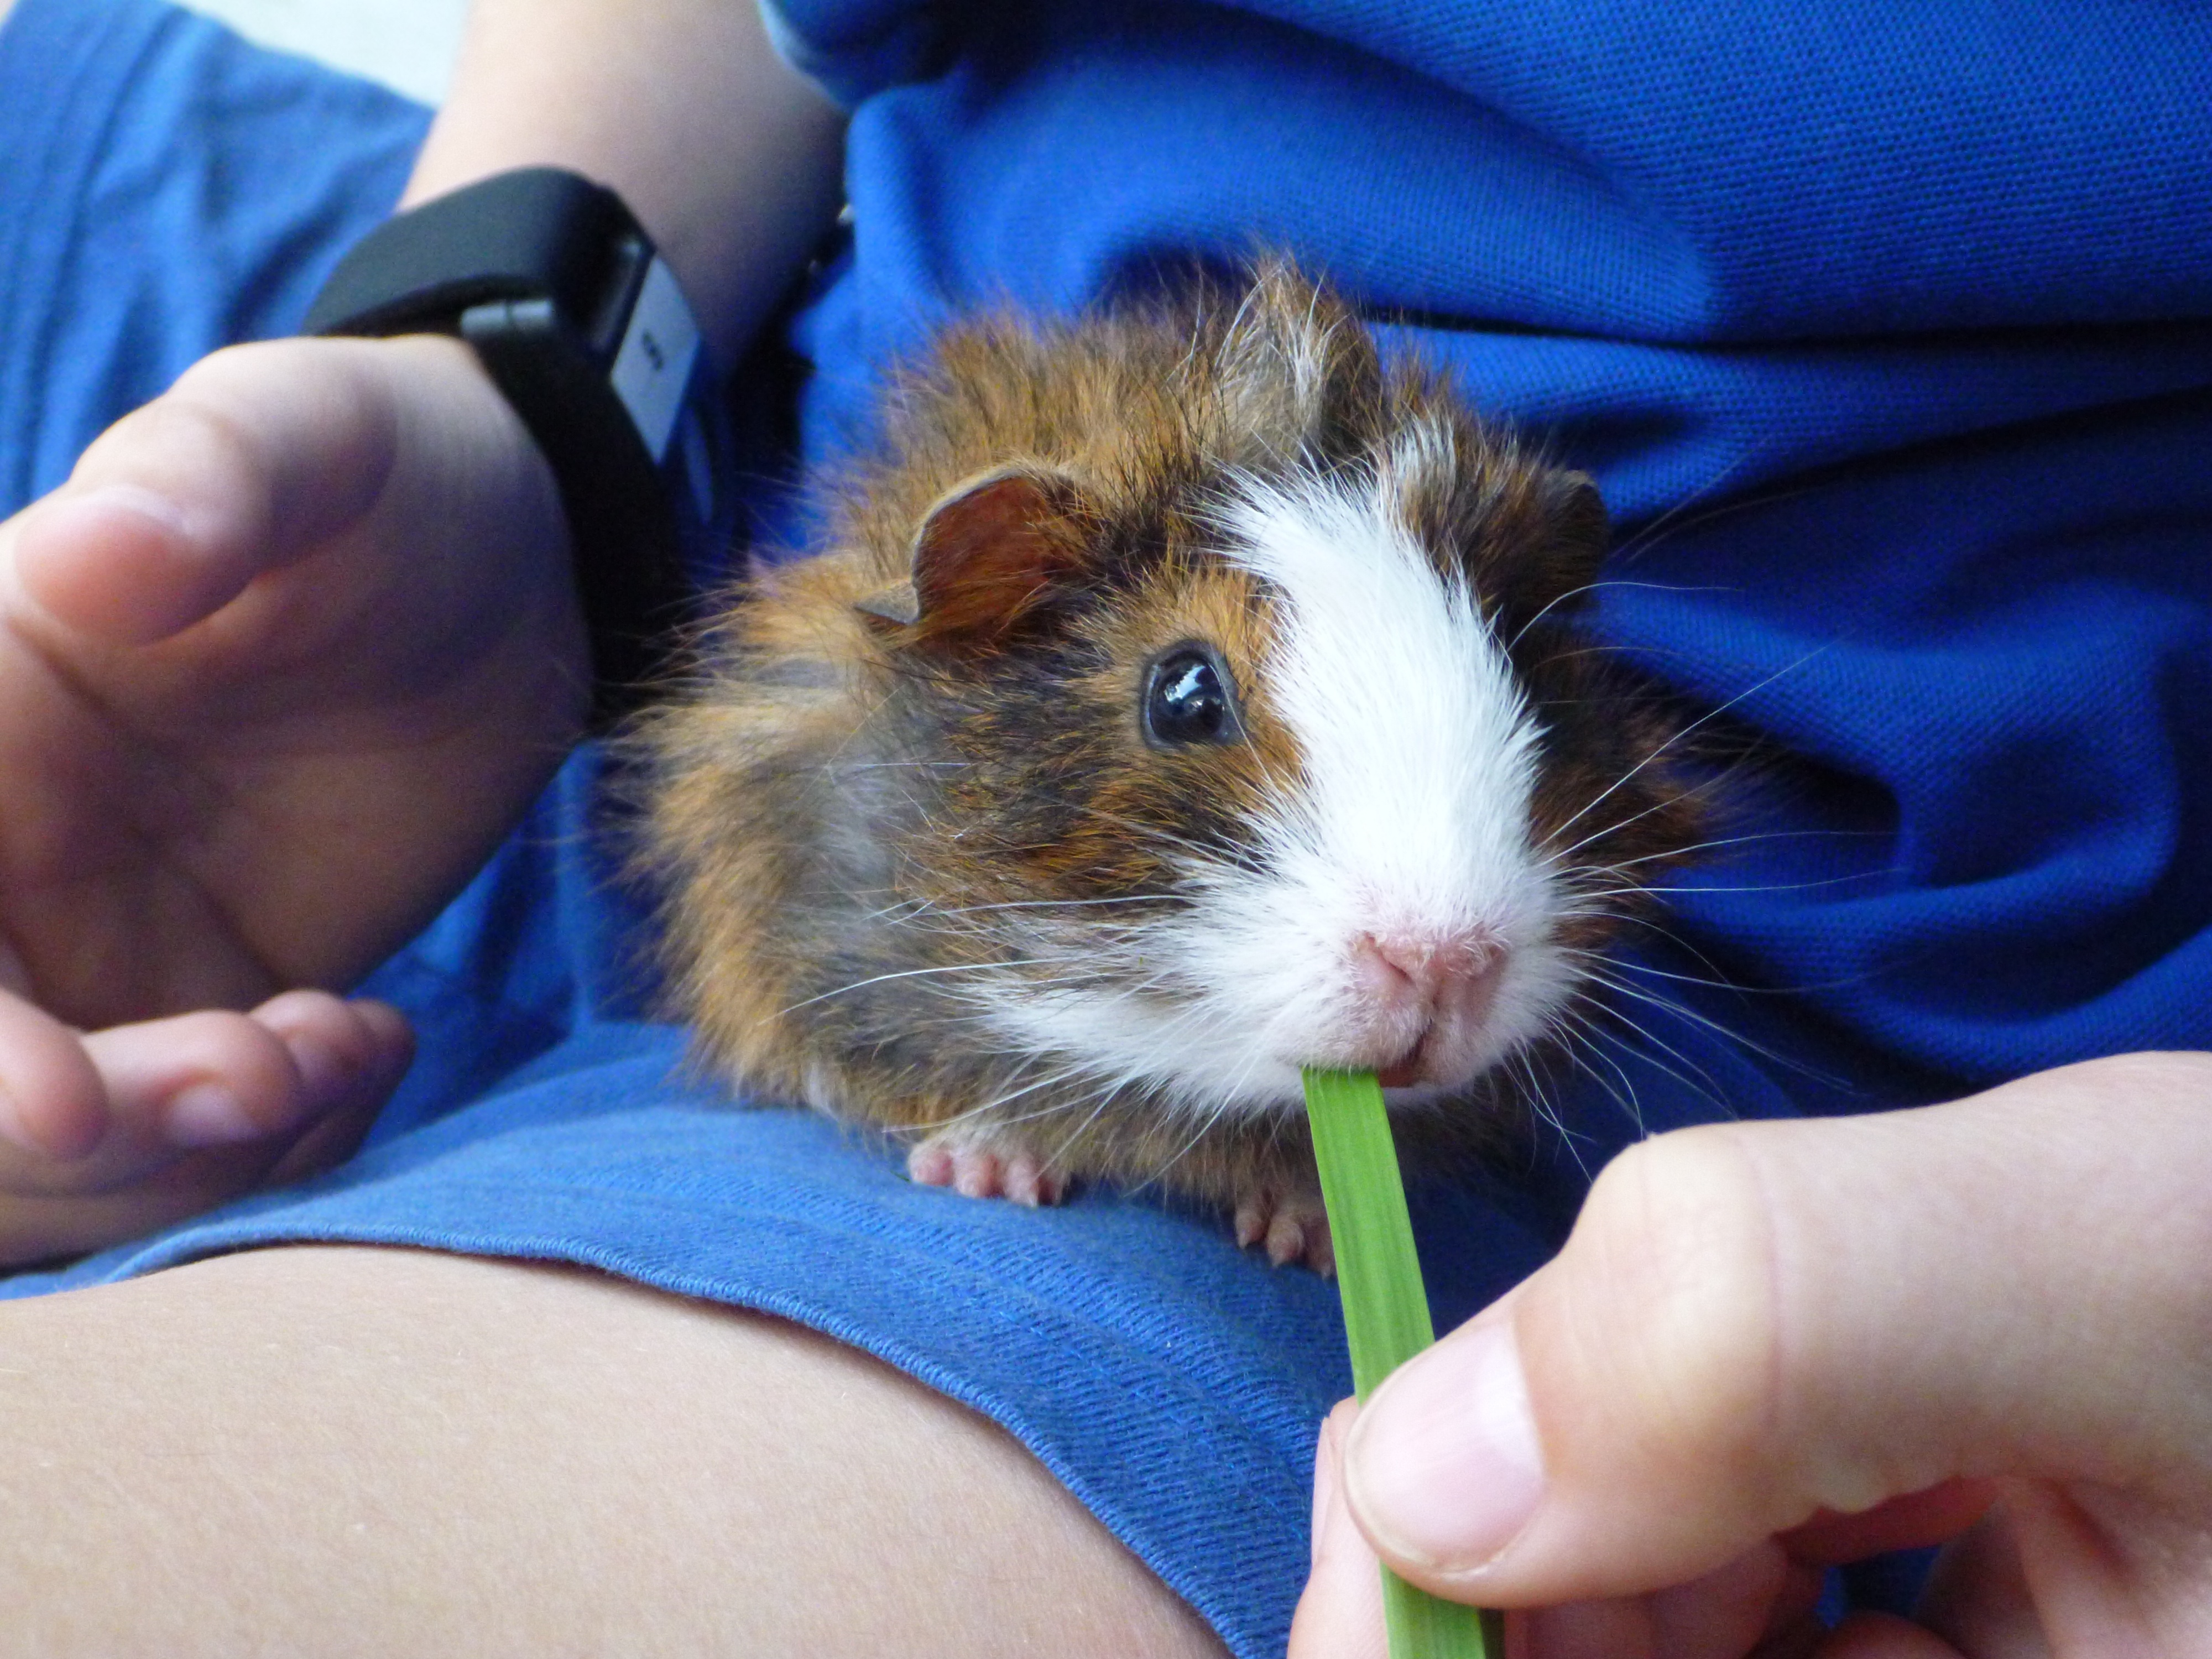 Press Release – Animals' presence may ease social anxiety in kids with autism